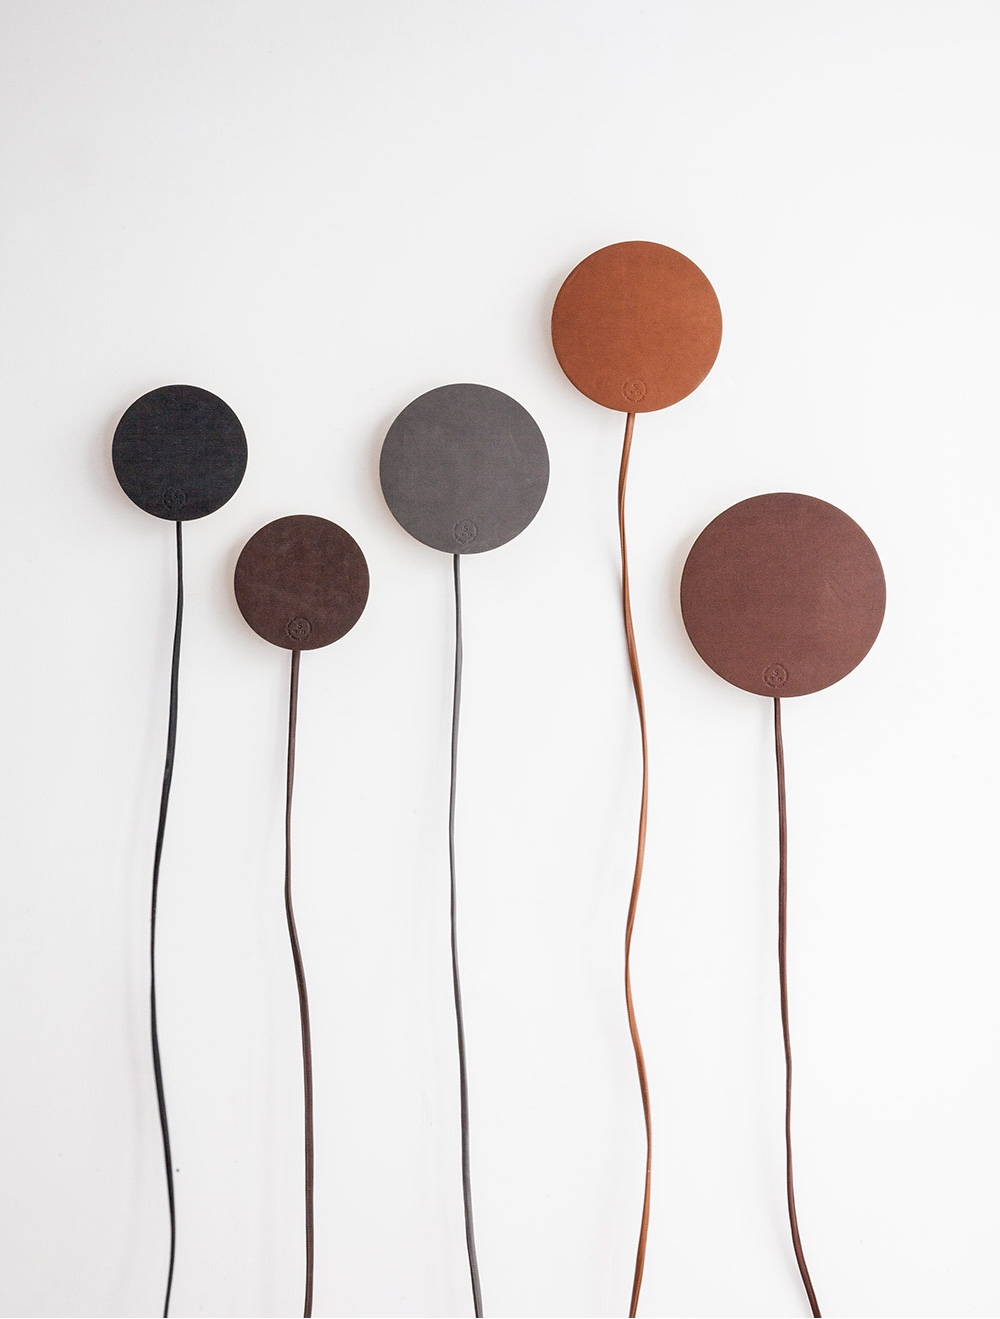 Lamps by Norm.Architects.Leather: Elegance, DunesandSense.